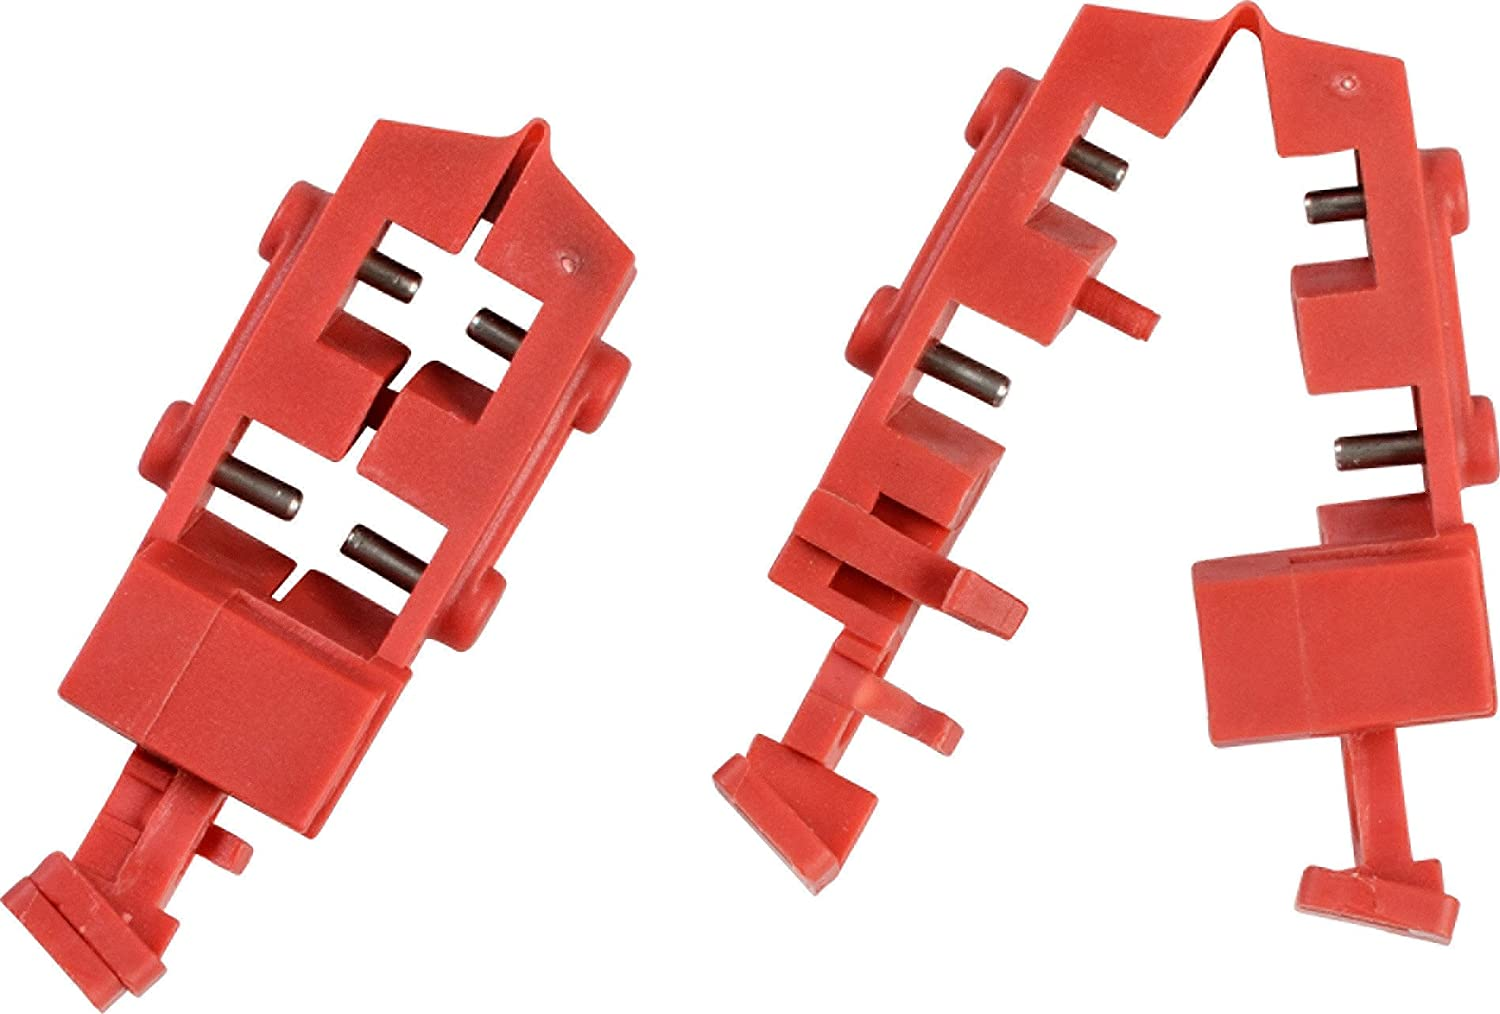 Brady Taglock Circuit Breaker Lockout Devices - 120/277 Volt Snap-On Multi-Pole Breaker Lockout Device, No Lock Needed - Red - 148694 (Pack of 50)